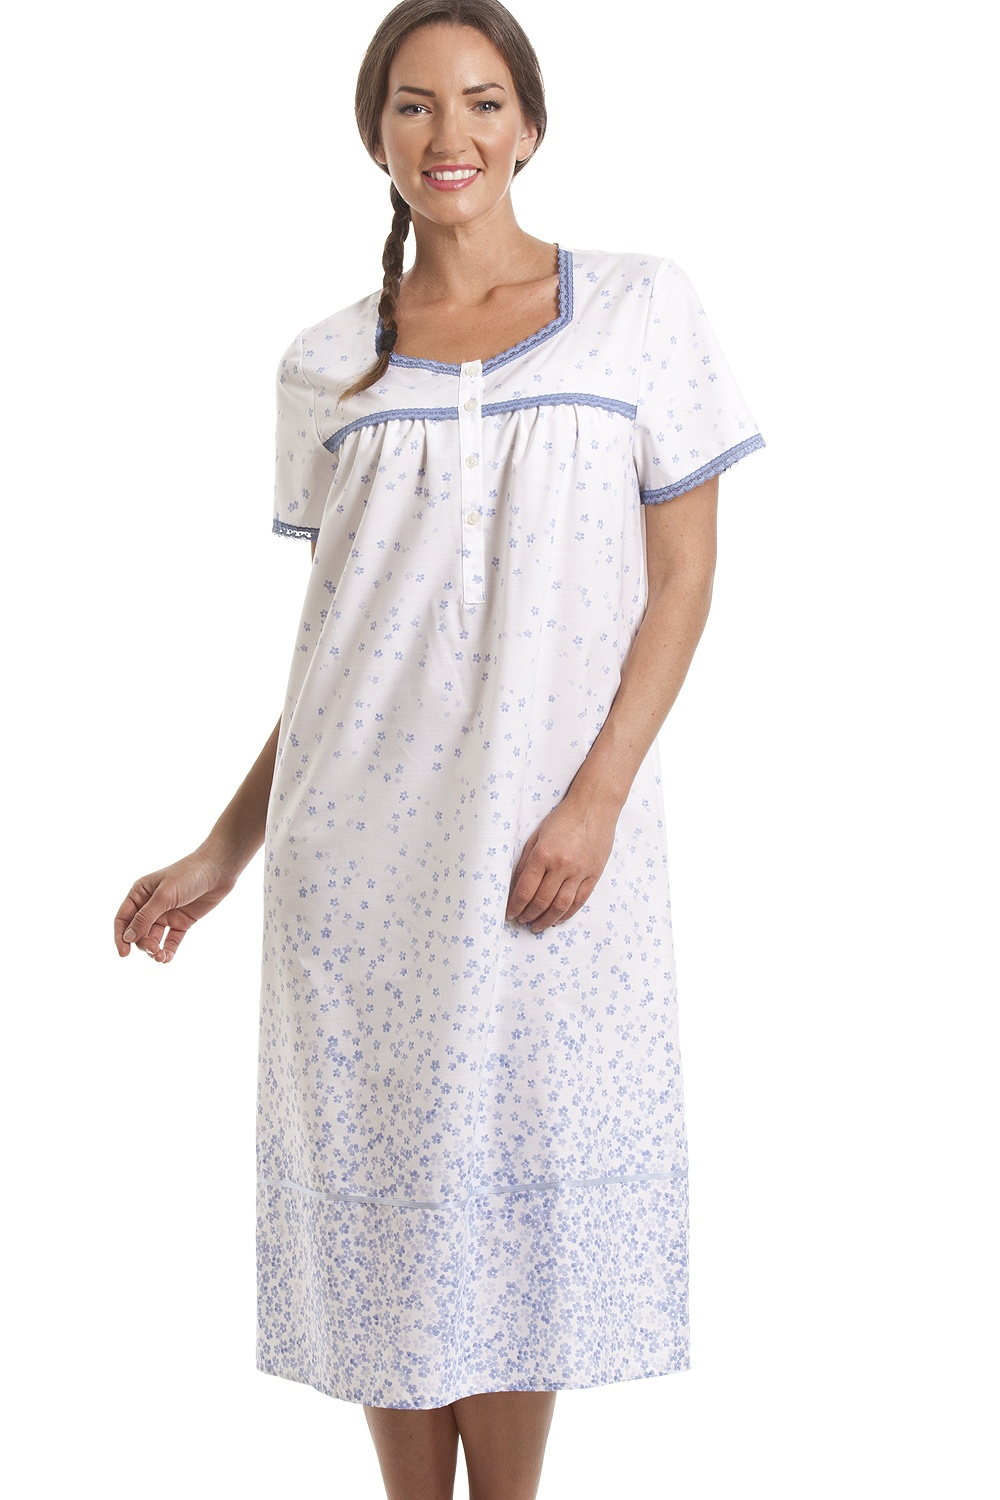 50d60ce2a1 Camille Classic Blue Floral Print Short Sleeve White Nightdress